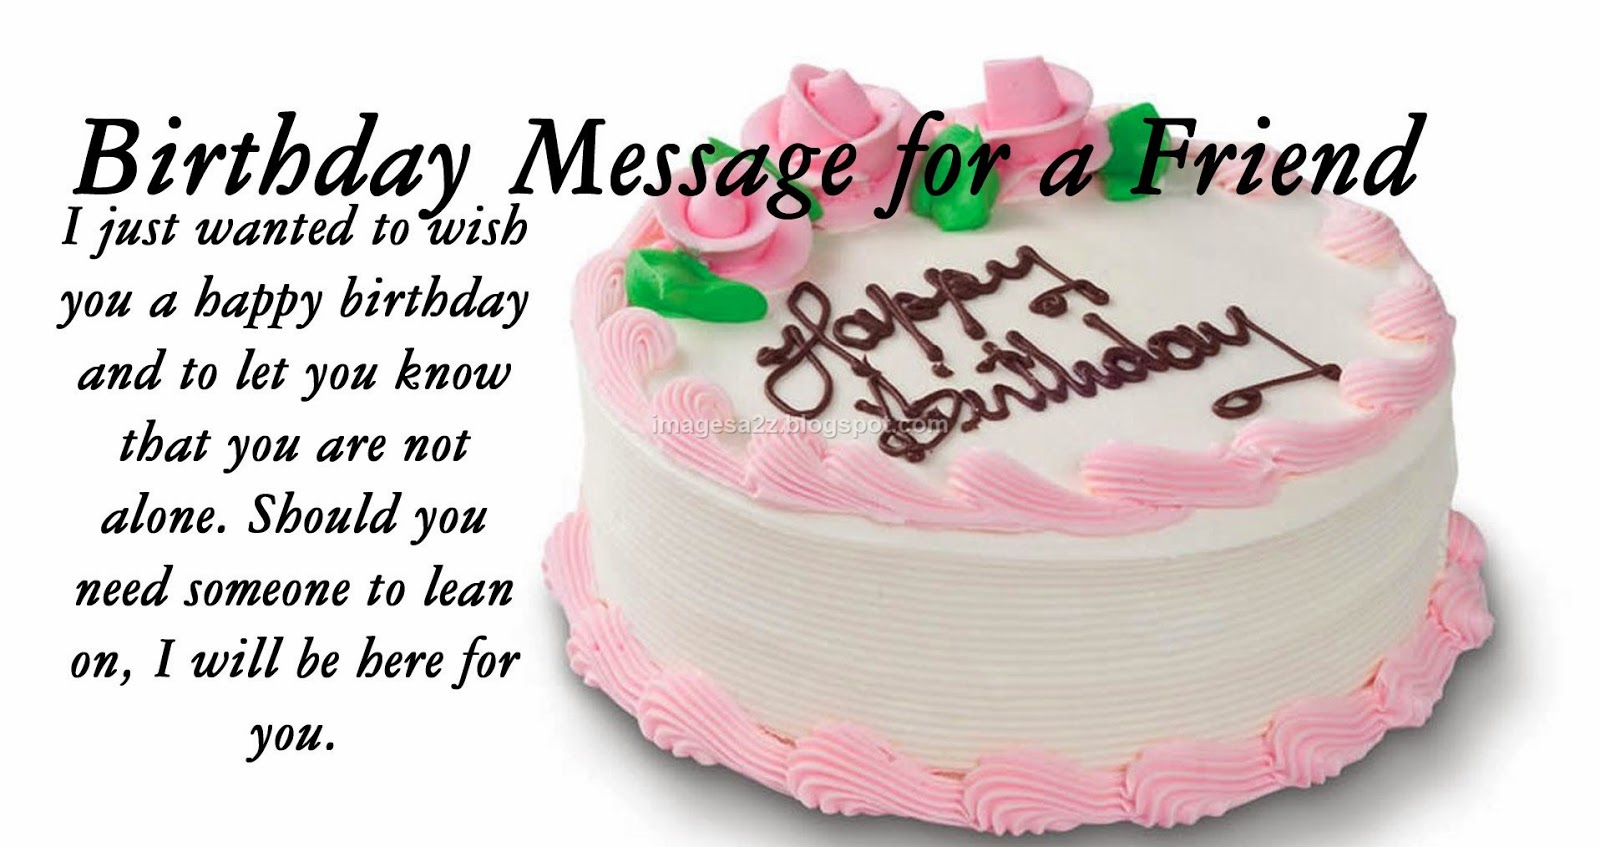 Birthday Quotes With Images Of Cake : Quotes About Birthday Cake. QuotesGram